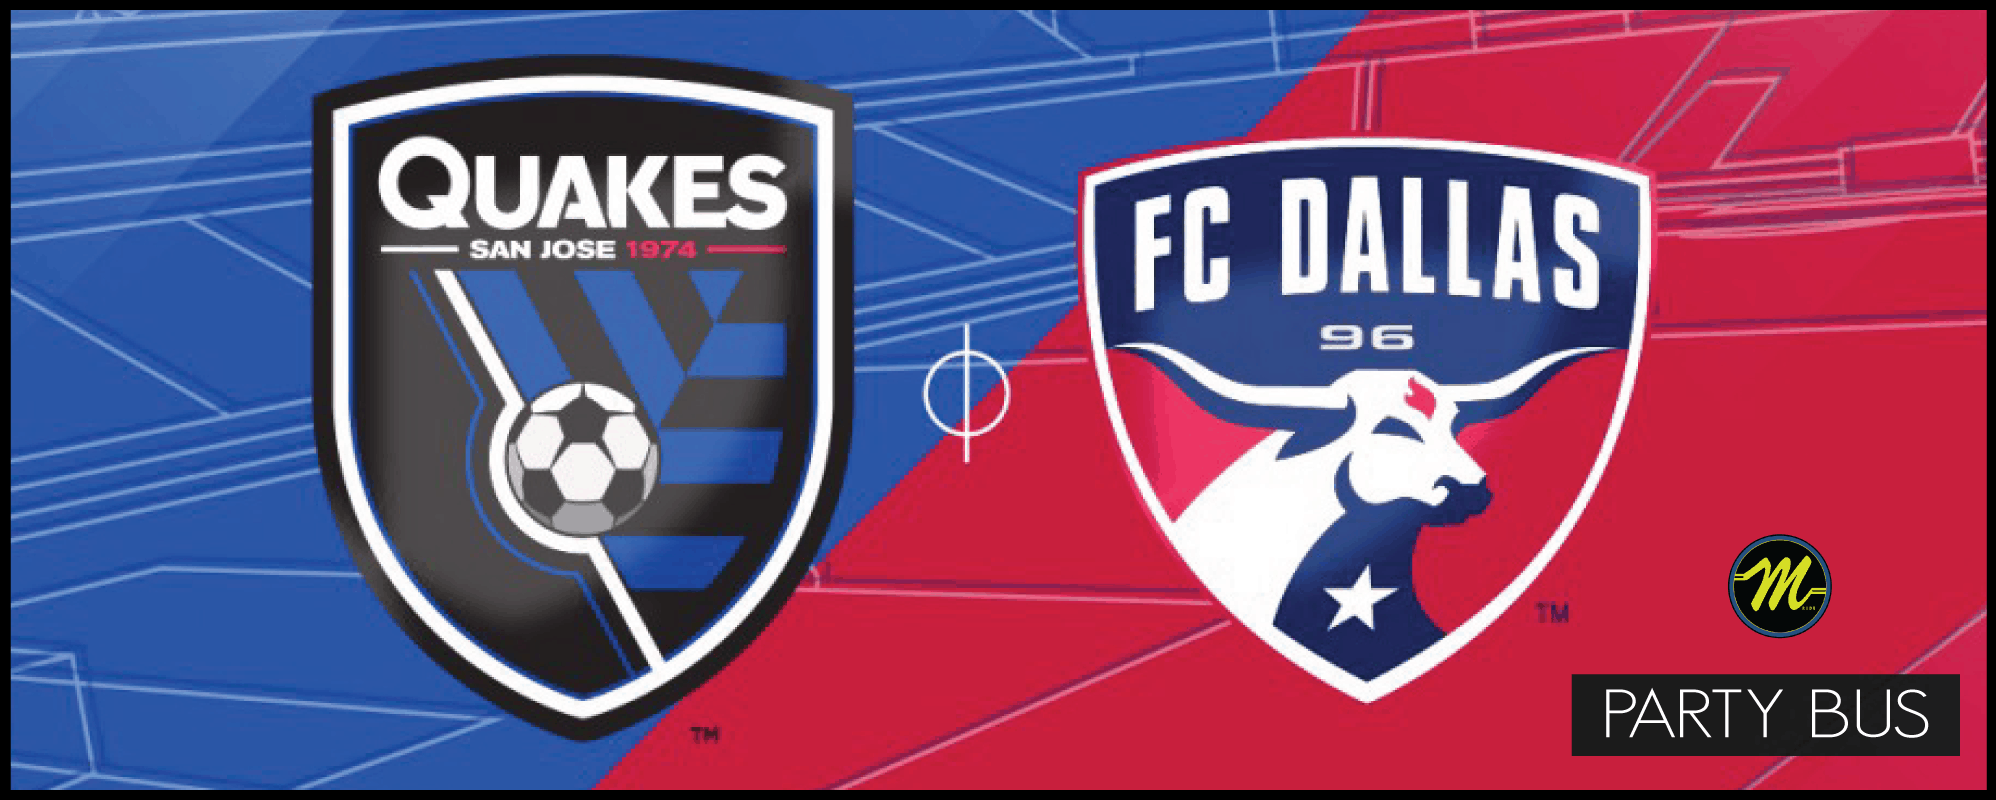 San Francisco Party Bus: San Jose Earthquakes vs. FC Dallas